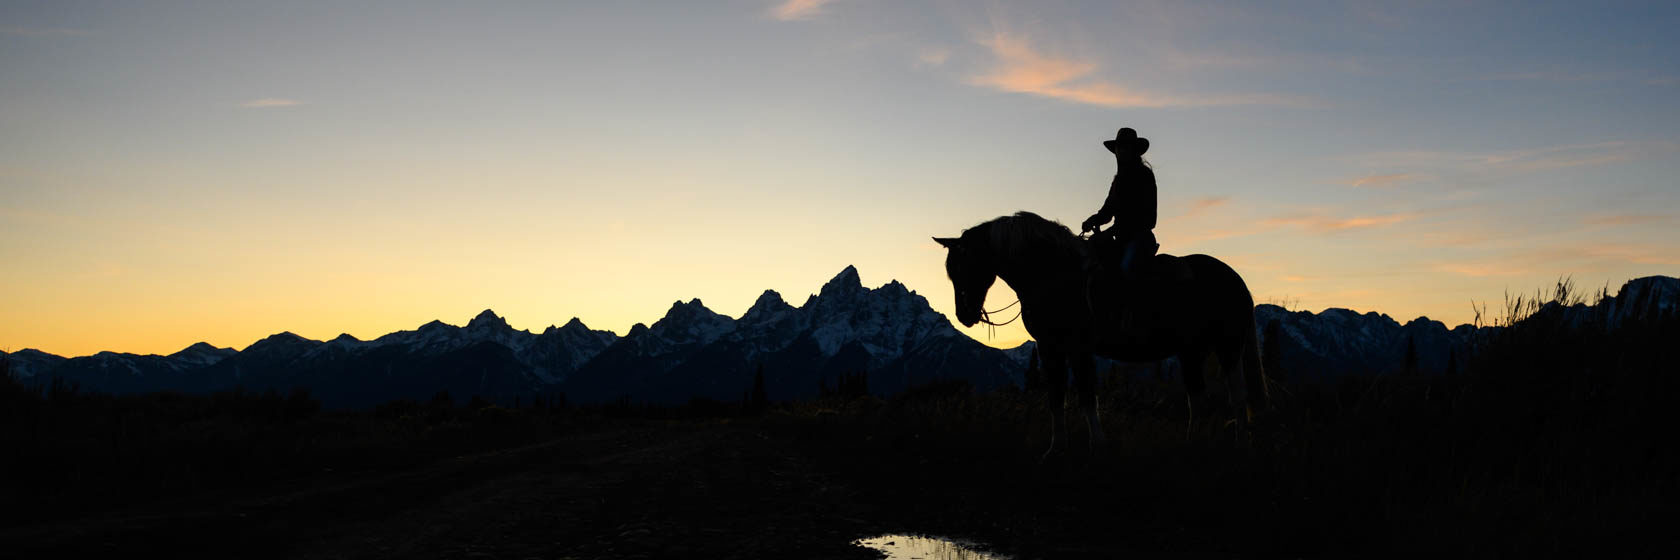 Rider in silhouette in Wyoming